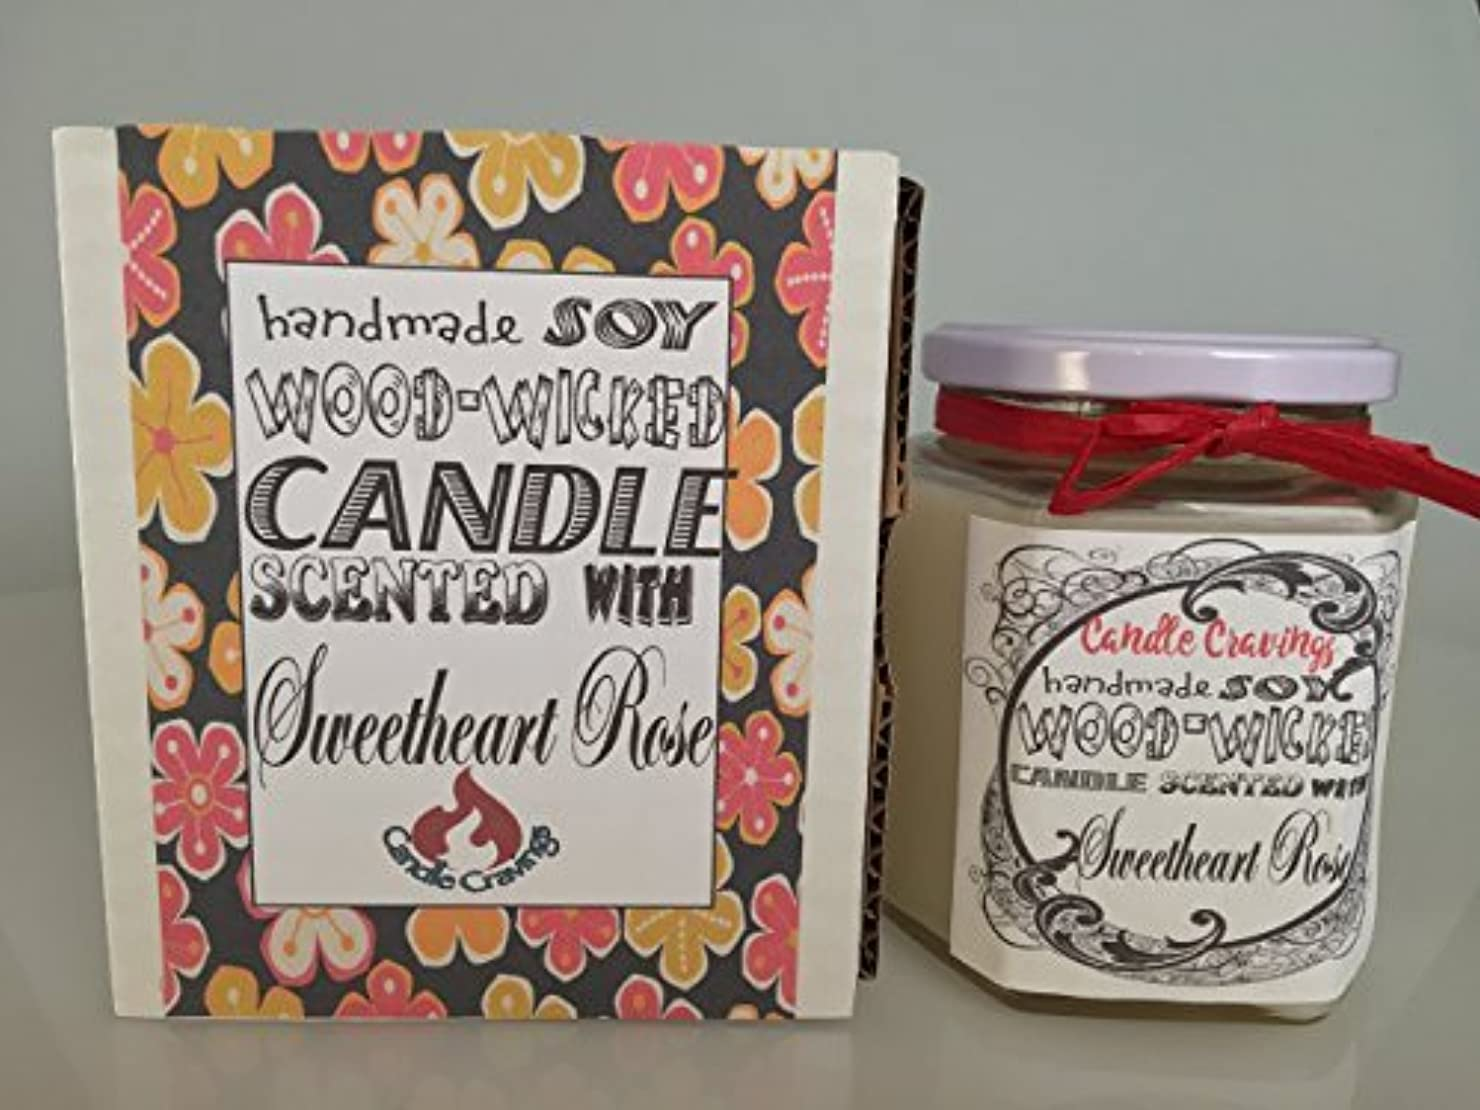 そうでなければ溶岩衝突Sweetheart Roses Scented Soy Wax Container Candle With Wood Wick 12 Oz US Handmade [並行輸入品]